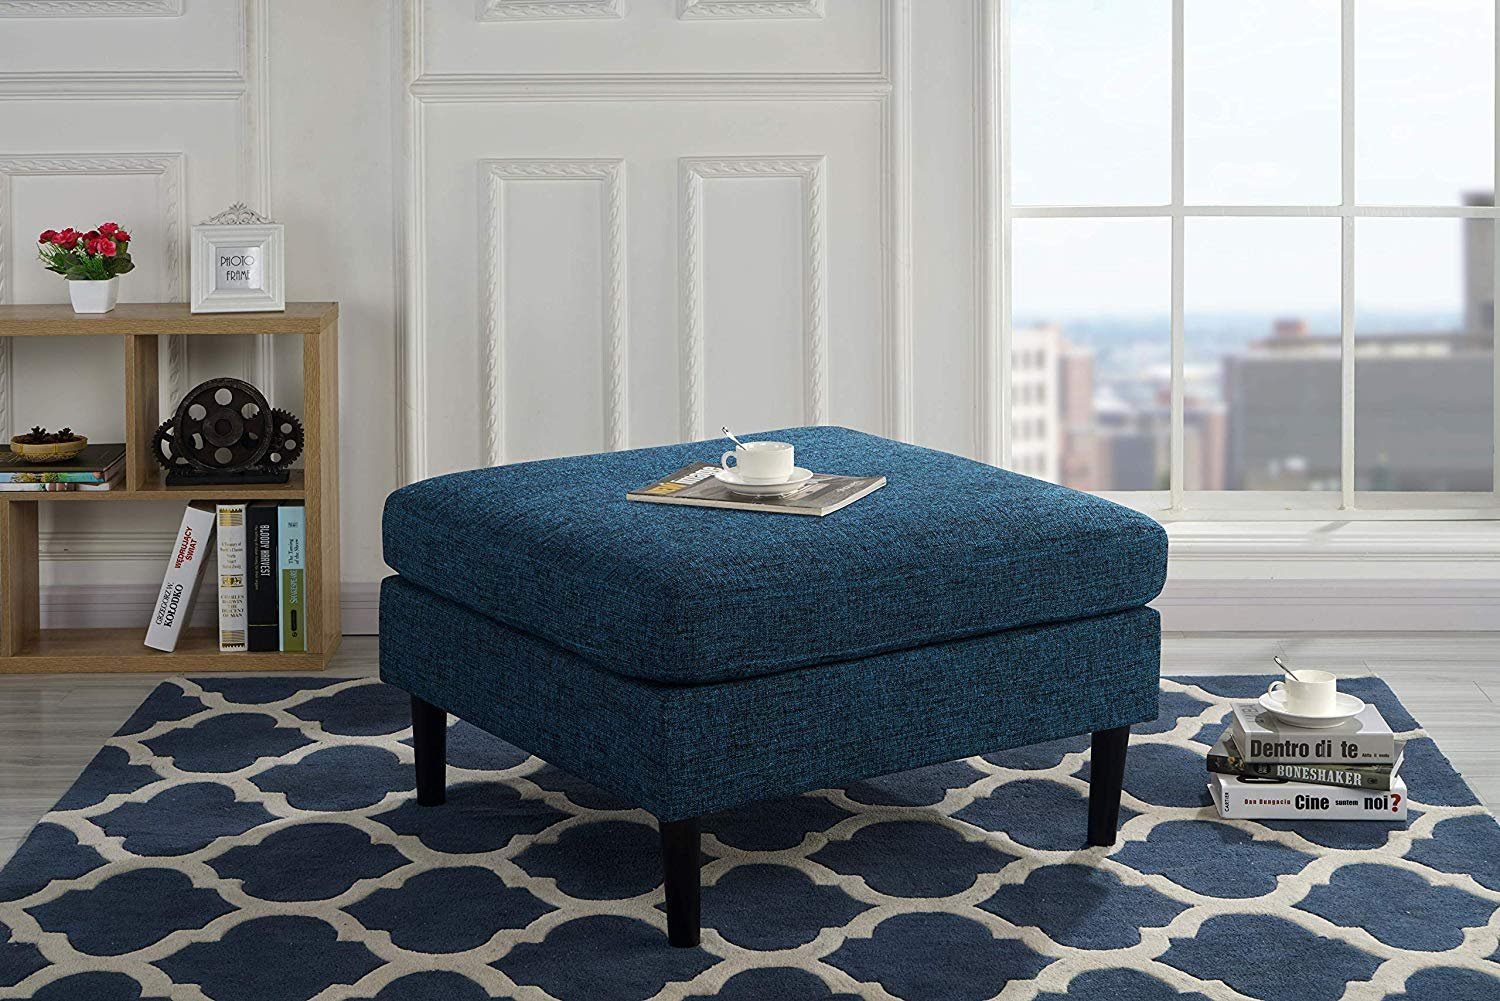 Details About Modern Living Room Accent Table Foot Rest Linen Fabric Ottoman Blue